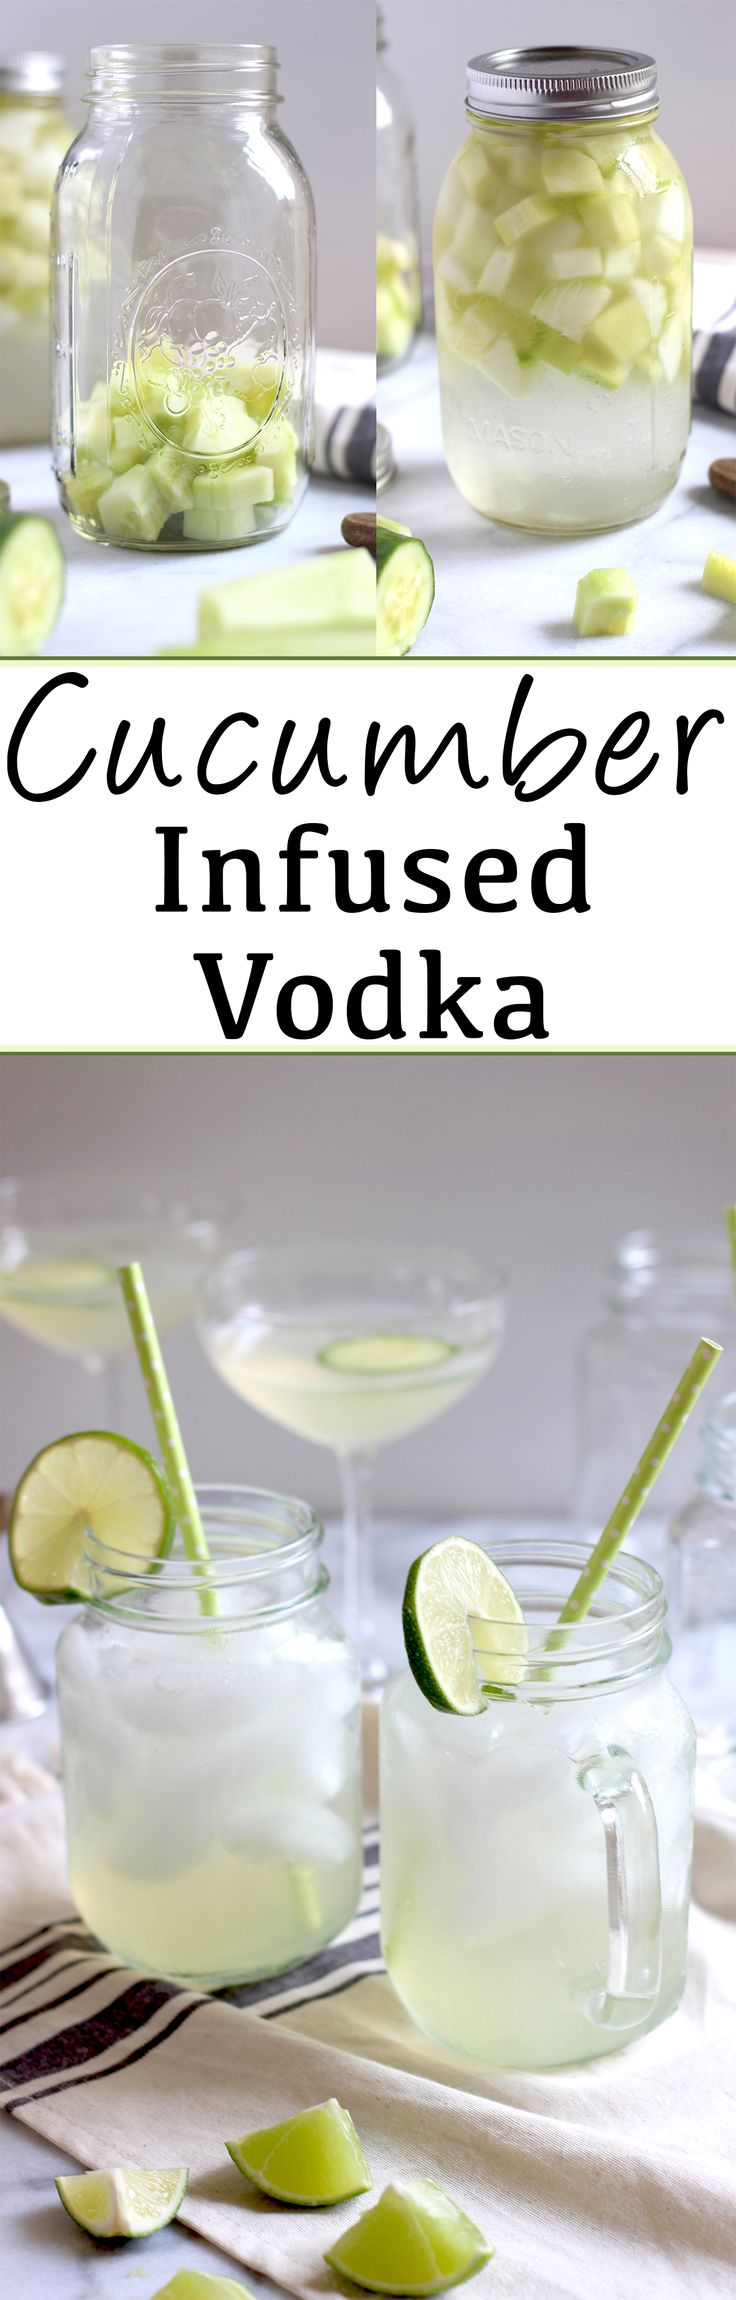 How to make cucumber infused vodka at home. Easy and an unbelievably refreshing addition to all your favorite summer cocktails including a Cucumber Martini and Cucumber Lime Spritzer!